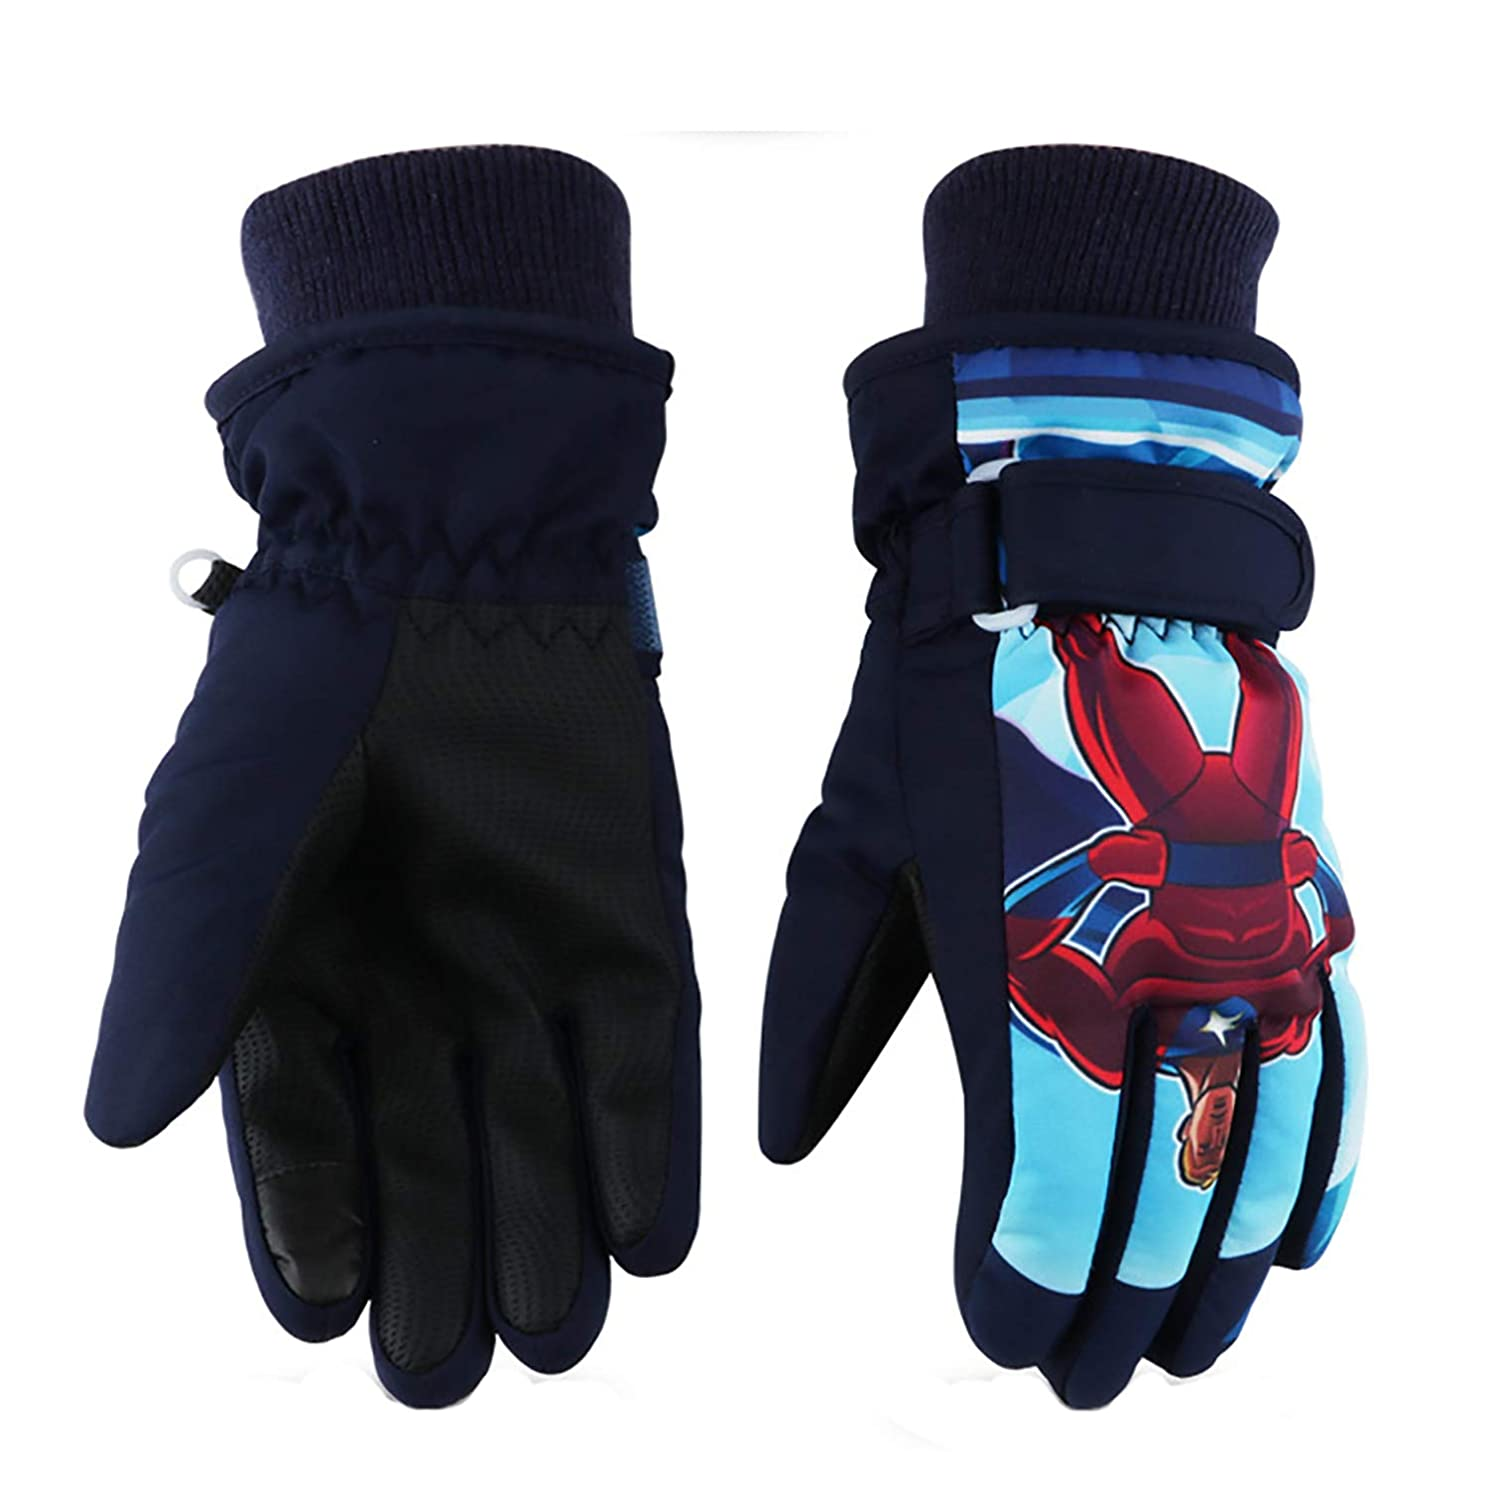 Kids Ski Gloves,Winter Warmest Waterproof and Breathable Snow Gloves for Boys Girls Children Skiing,Snowboarding Shoveling Windproof Juniors Thermal Gloves GL8